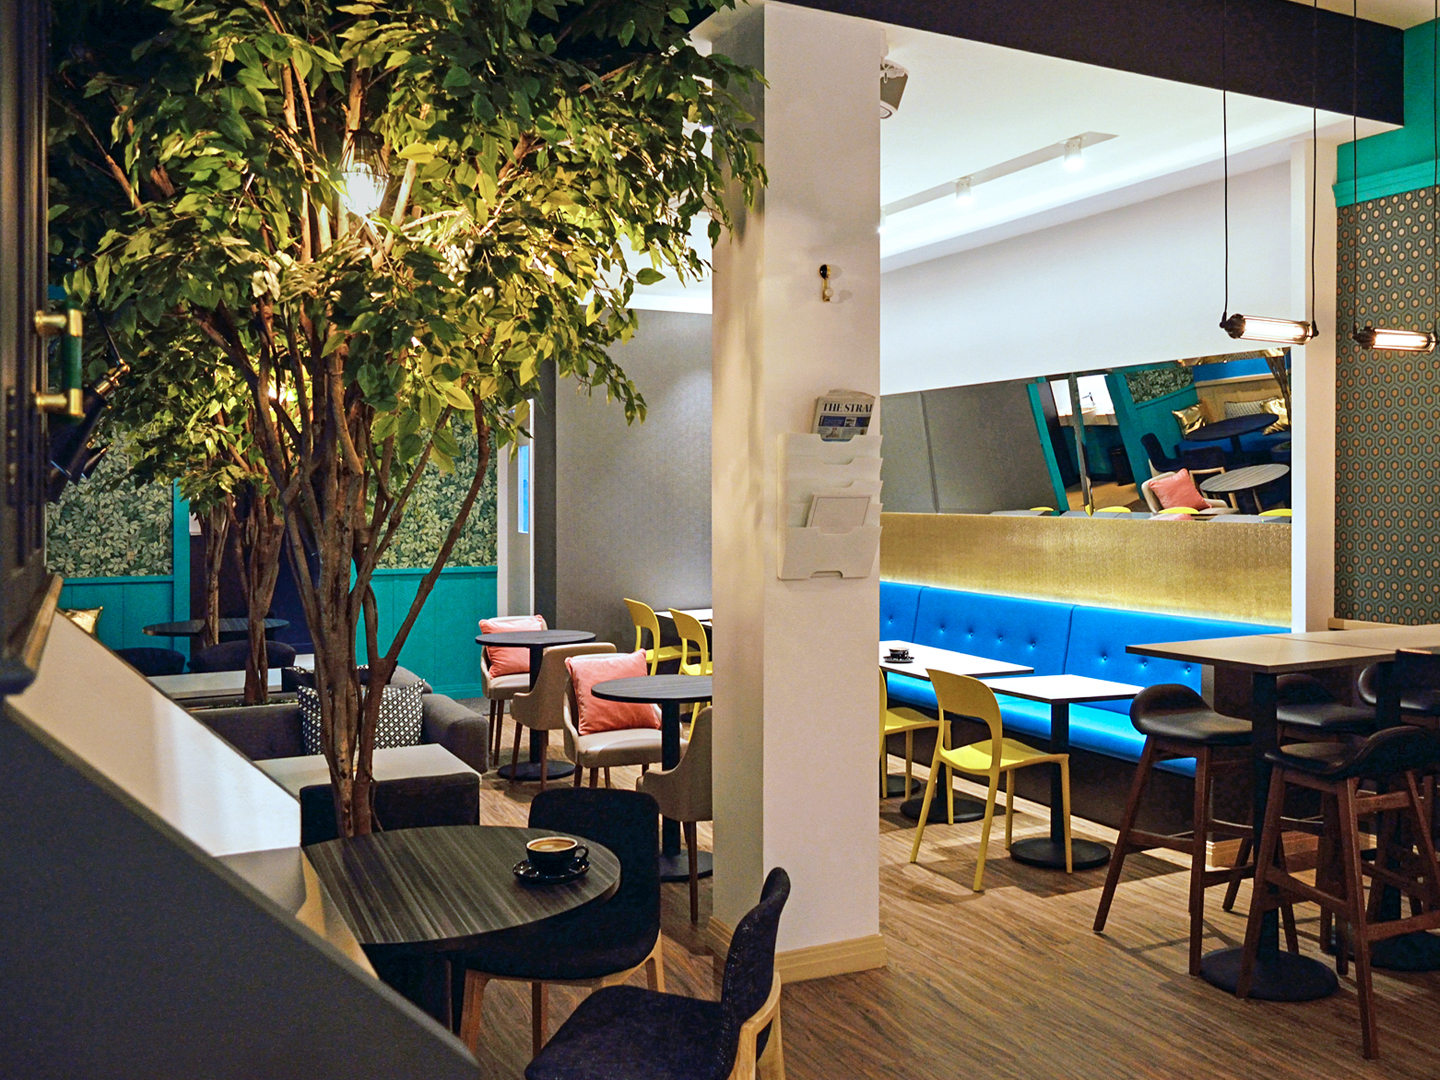 wanna-cuppa-singapore-cafe-interior-design-garden-themed-trees-rear-dining-area-1440x1080